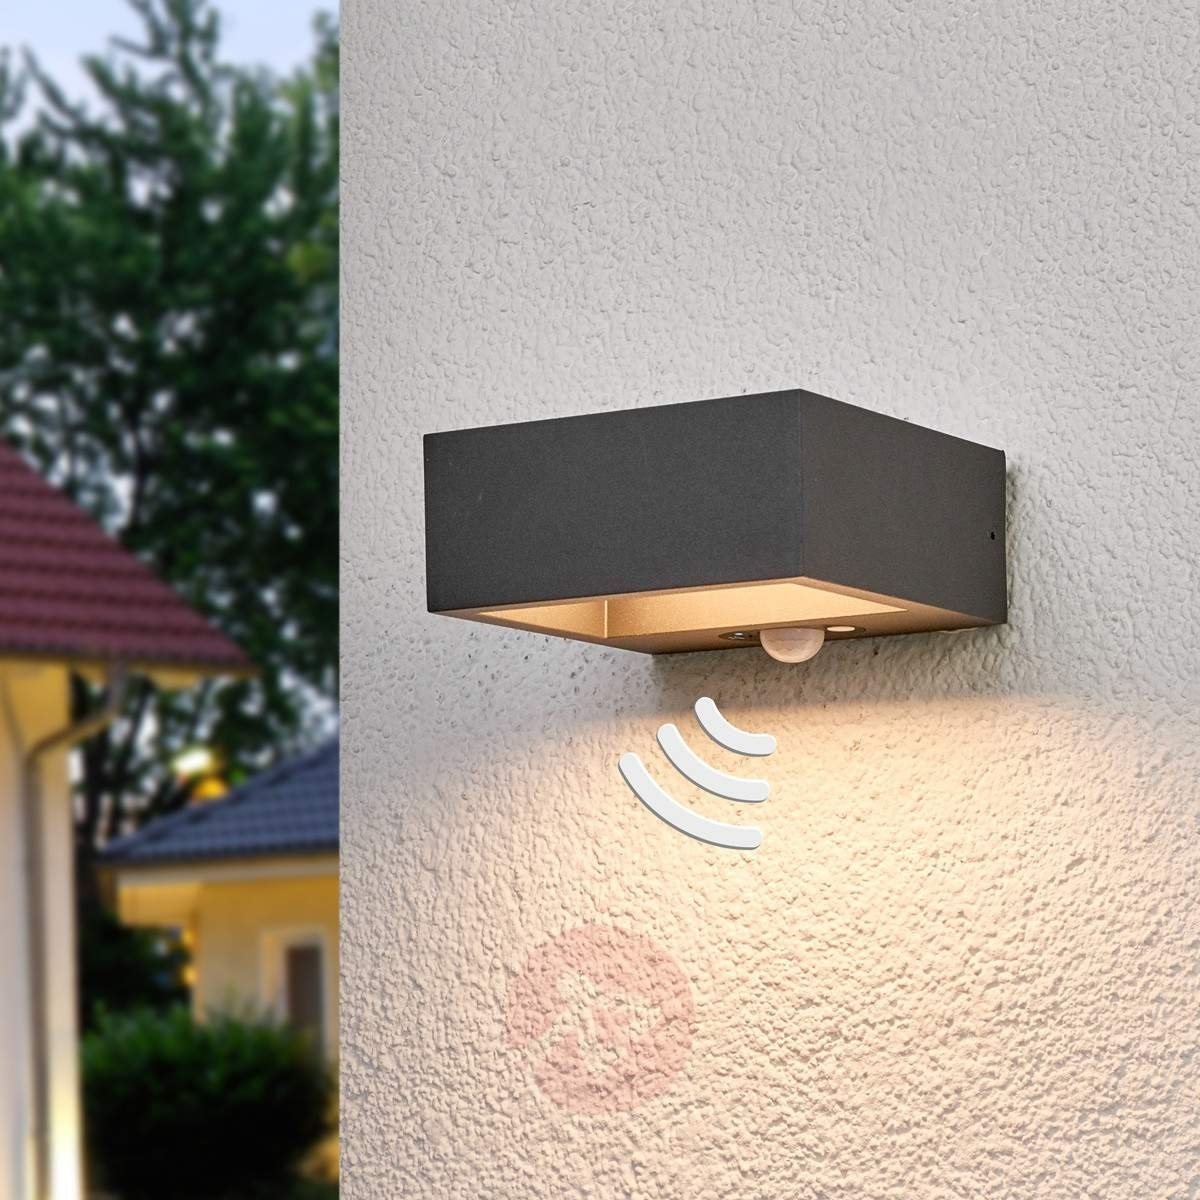 Solar Powered Led Outdoor Wall Light Mahra, Sensor | Lights (View 6 of 15)